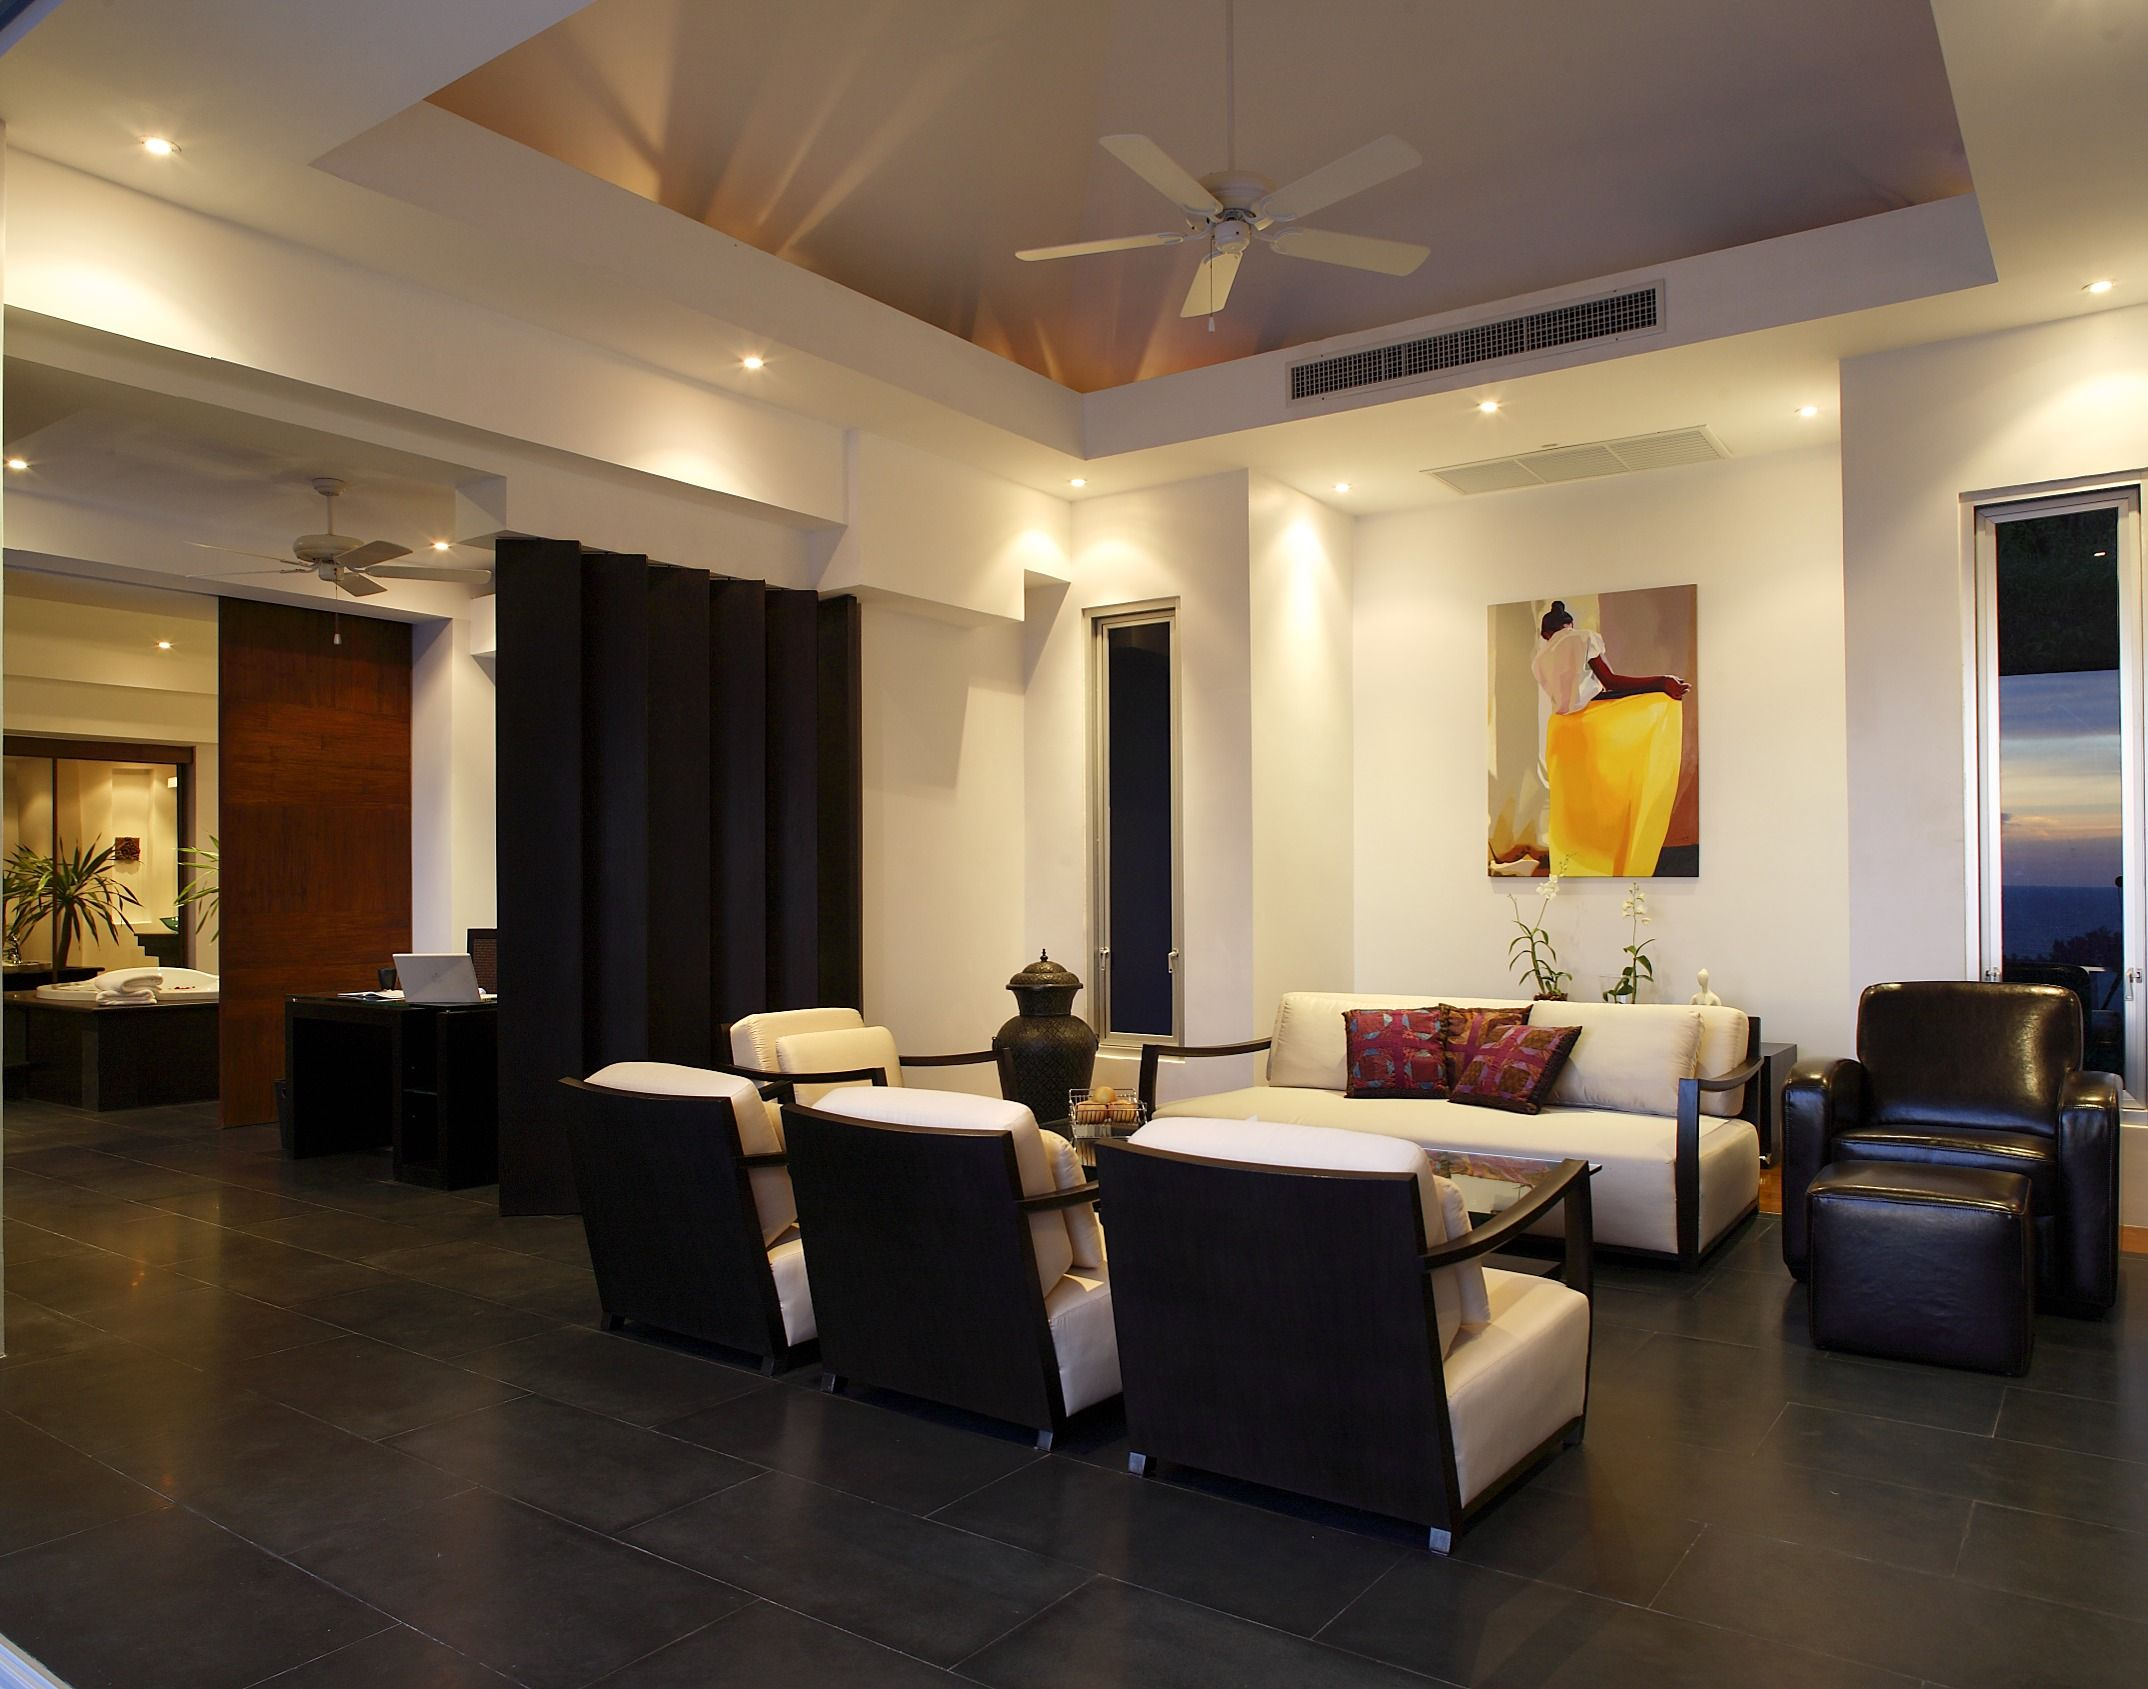 A bright and modern open concept living room with black